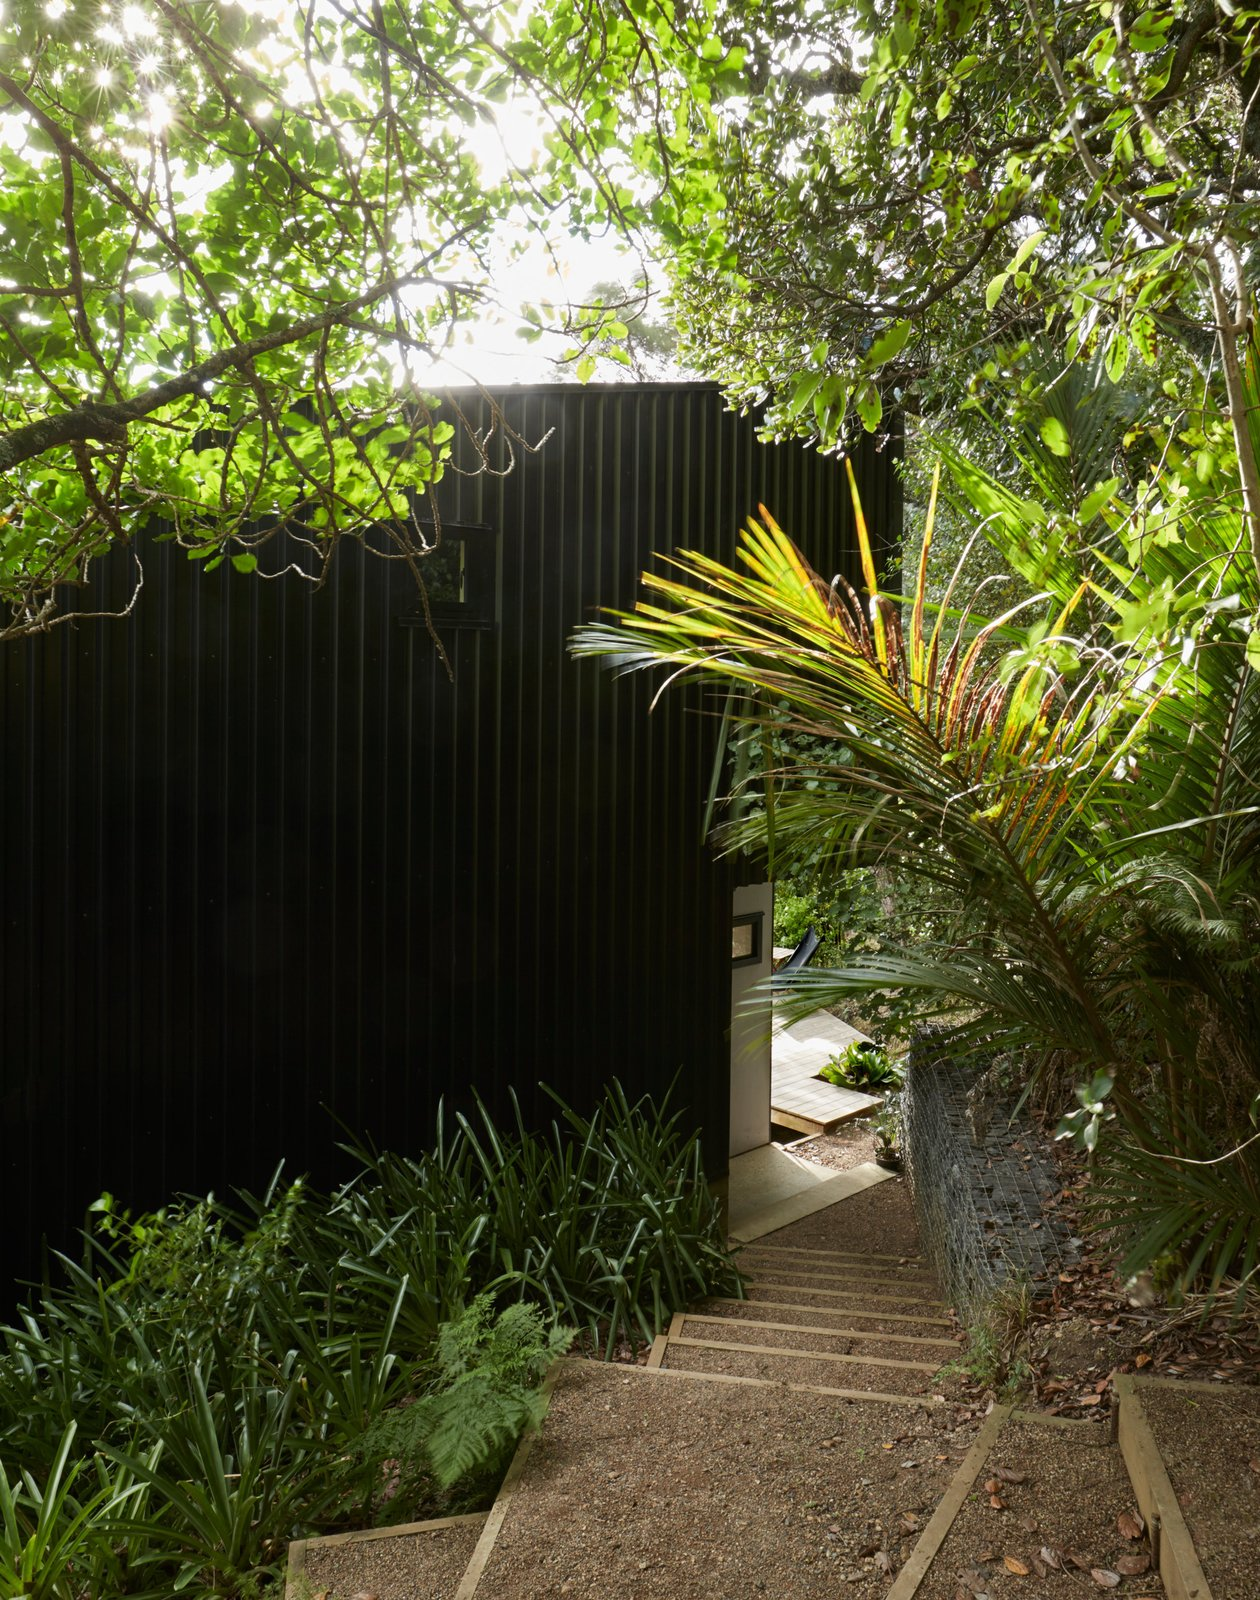 """Seeking a private escape from busy Auckland life, Milton Henry and Mark Summerville purchased an """"unbuildable"""" lot on Waiheke Island and then rehabbed it over 15 years.A clearing in the bush dictated the footprint,resulting in two stacked volumes that form a tower-like structure over four split levels. It took a customized trailer to bring materials to the steep site.  Photo 2 of 13 in A Tiny Footprint Isn't So Bad When You Live in a Tower"""